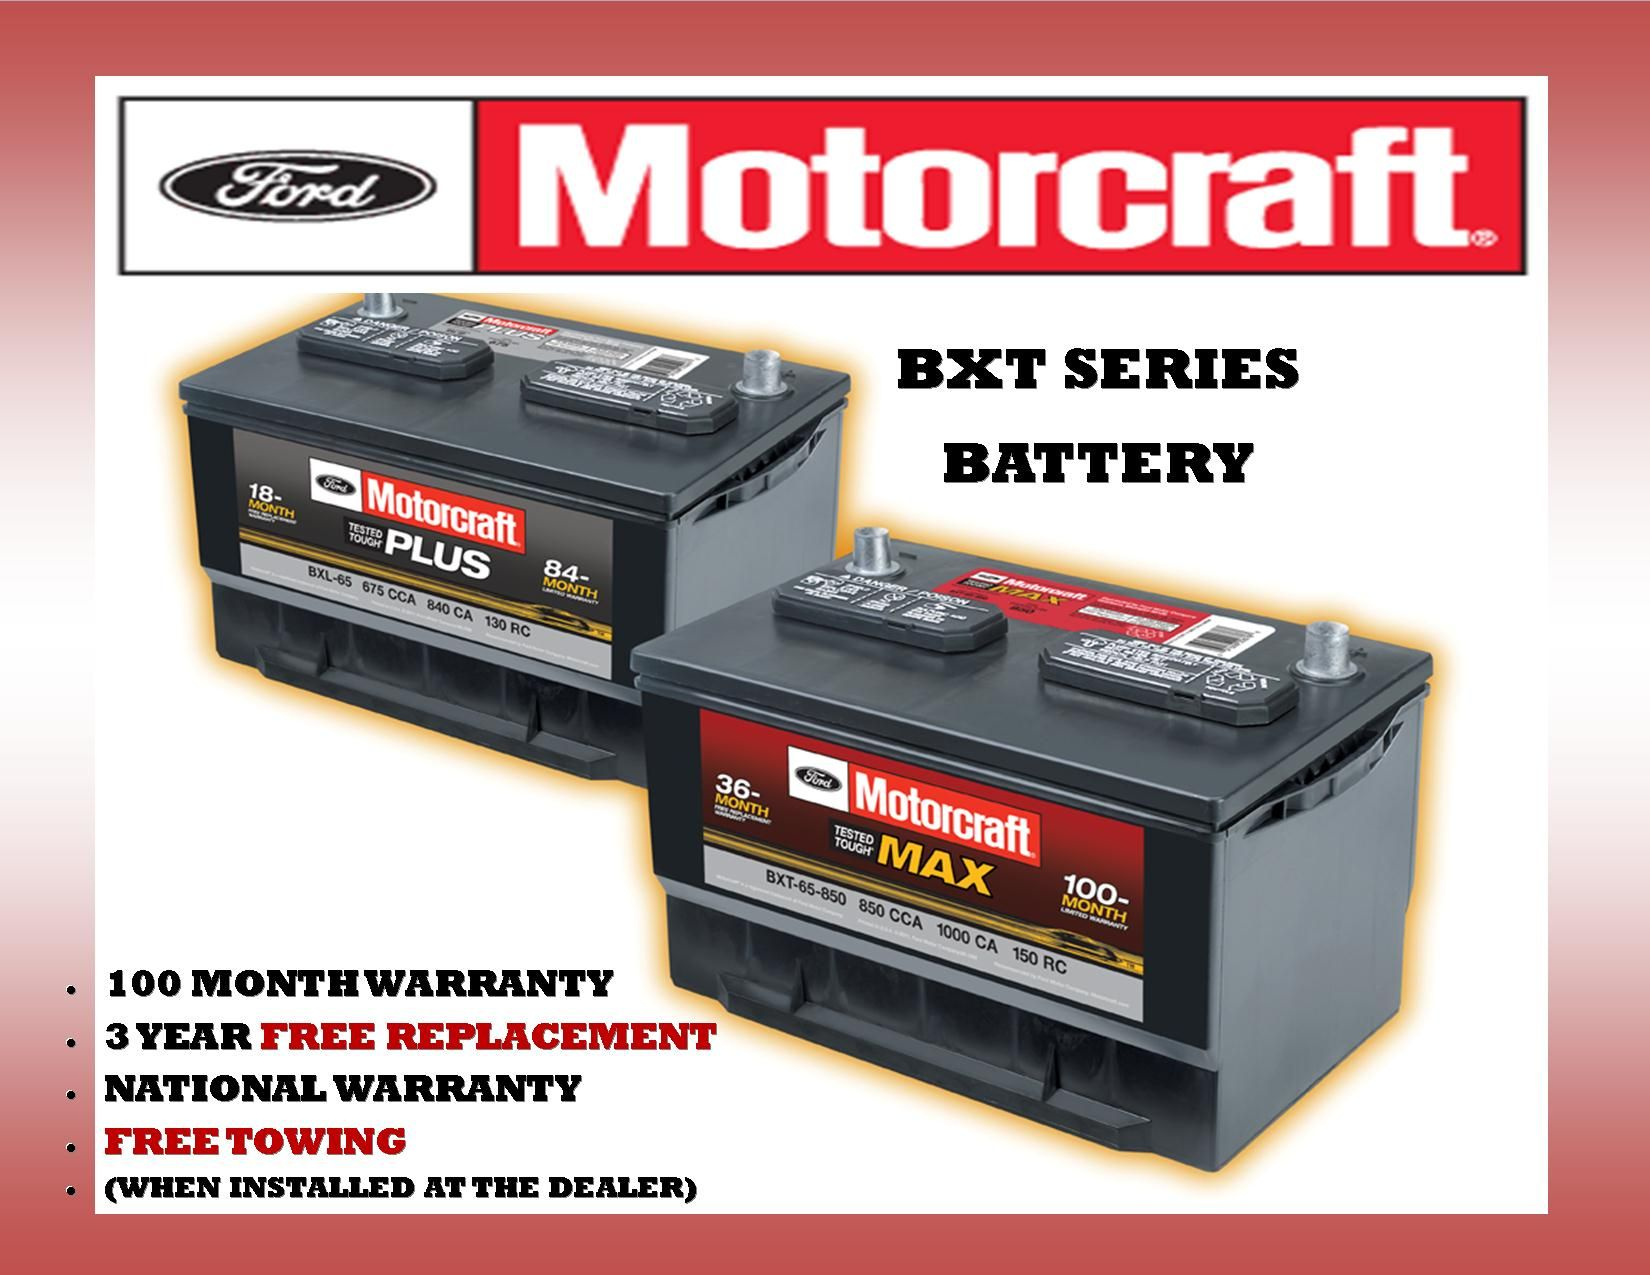 Motorcraft Bxt Series Batteries Have A National 100 Month Warranty